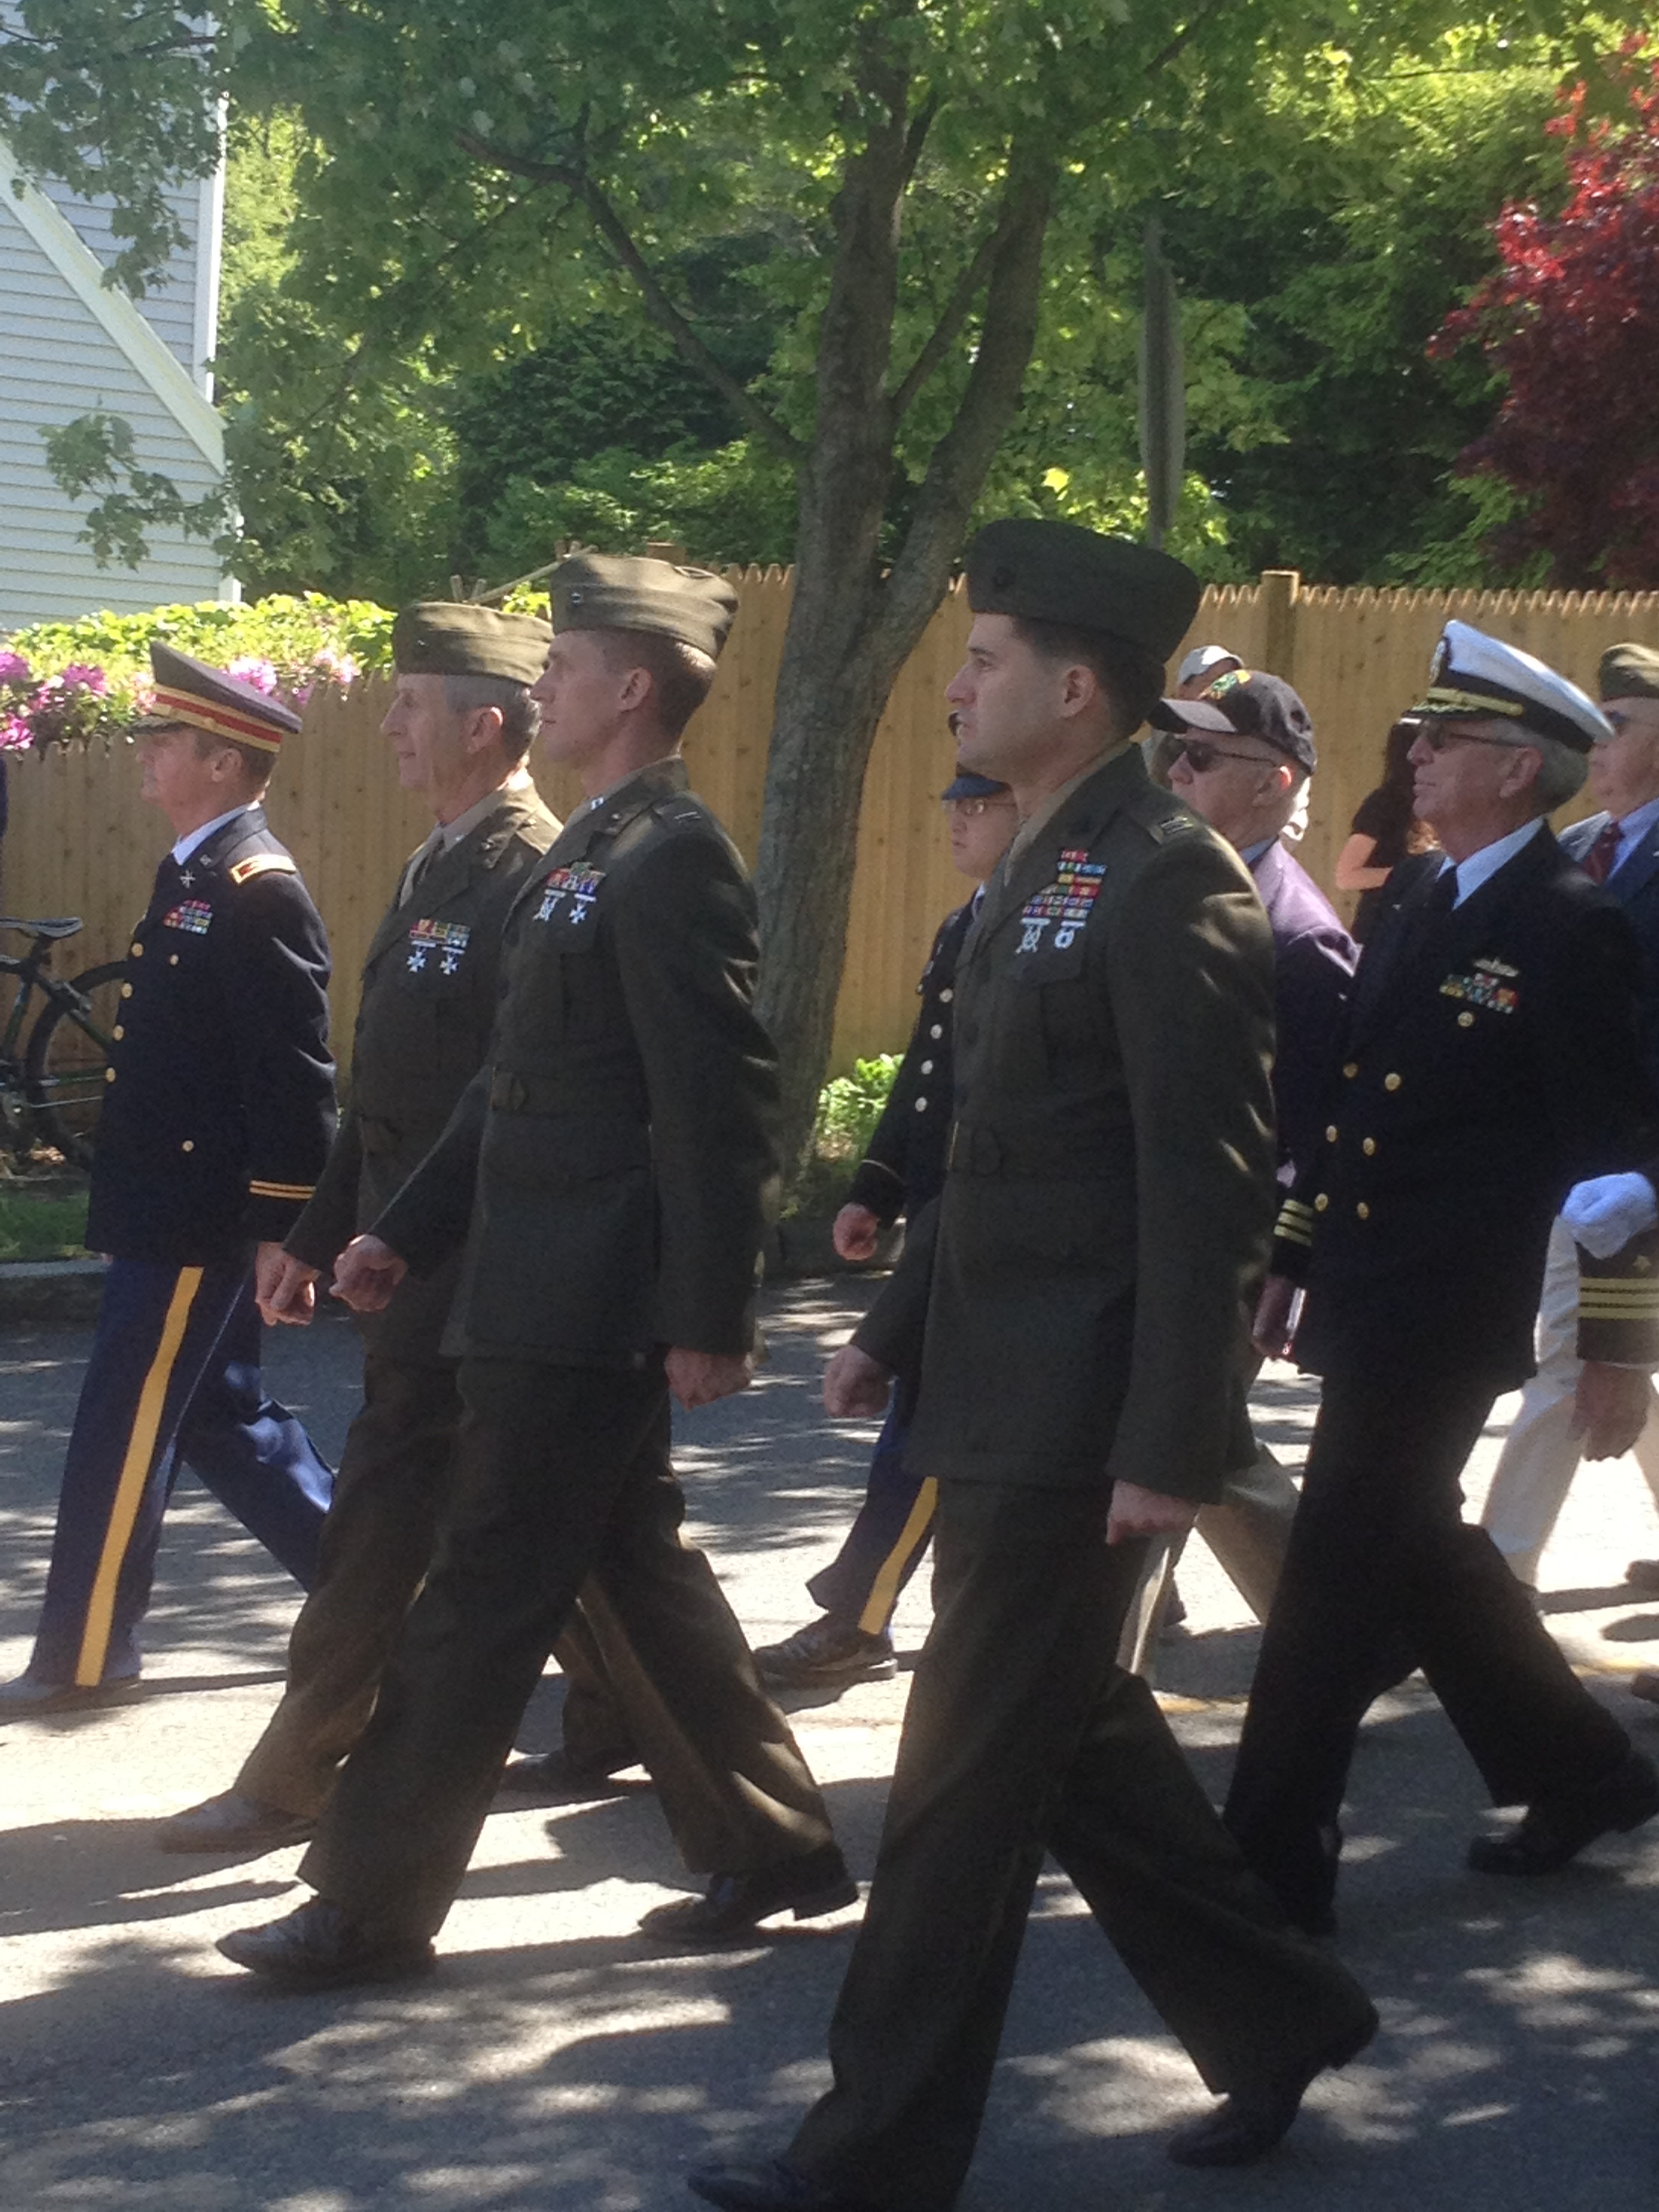 130527_Marching_in_Memorial_Day_Parade.JPG